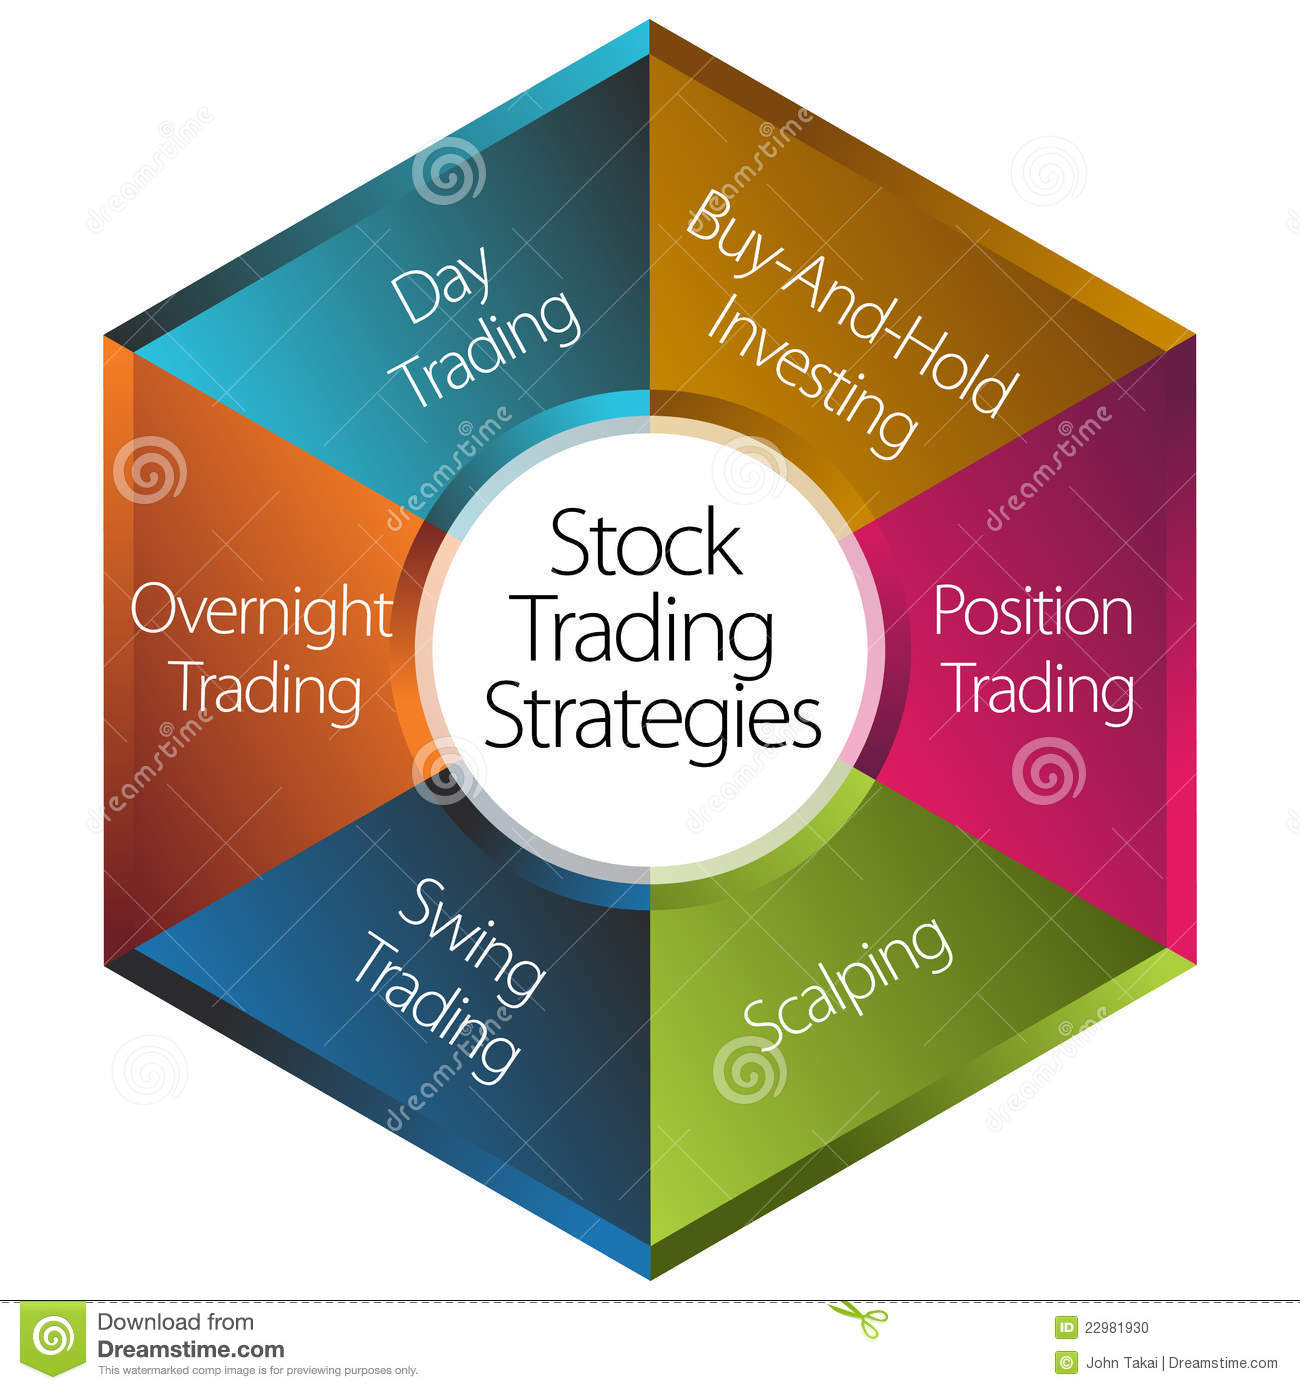 Trading strategies download